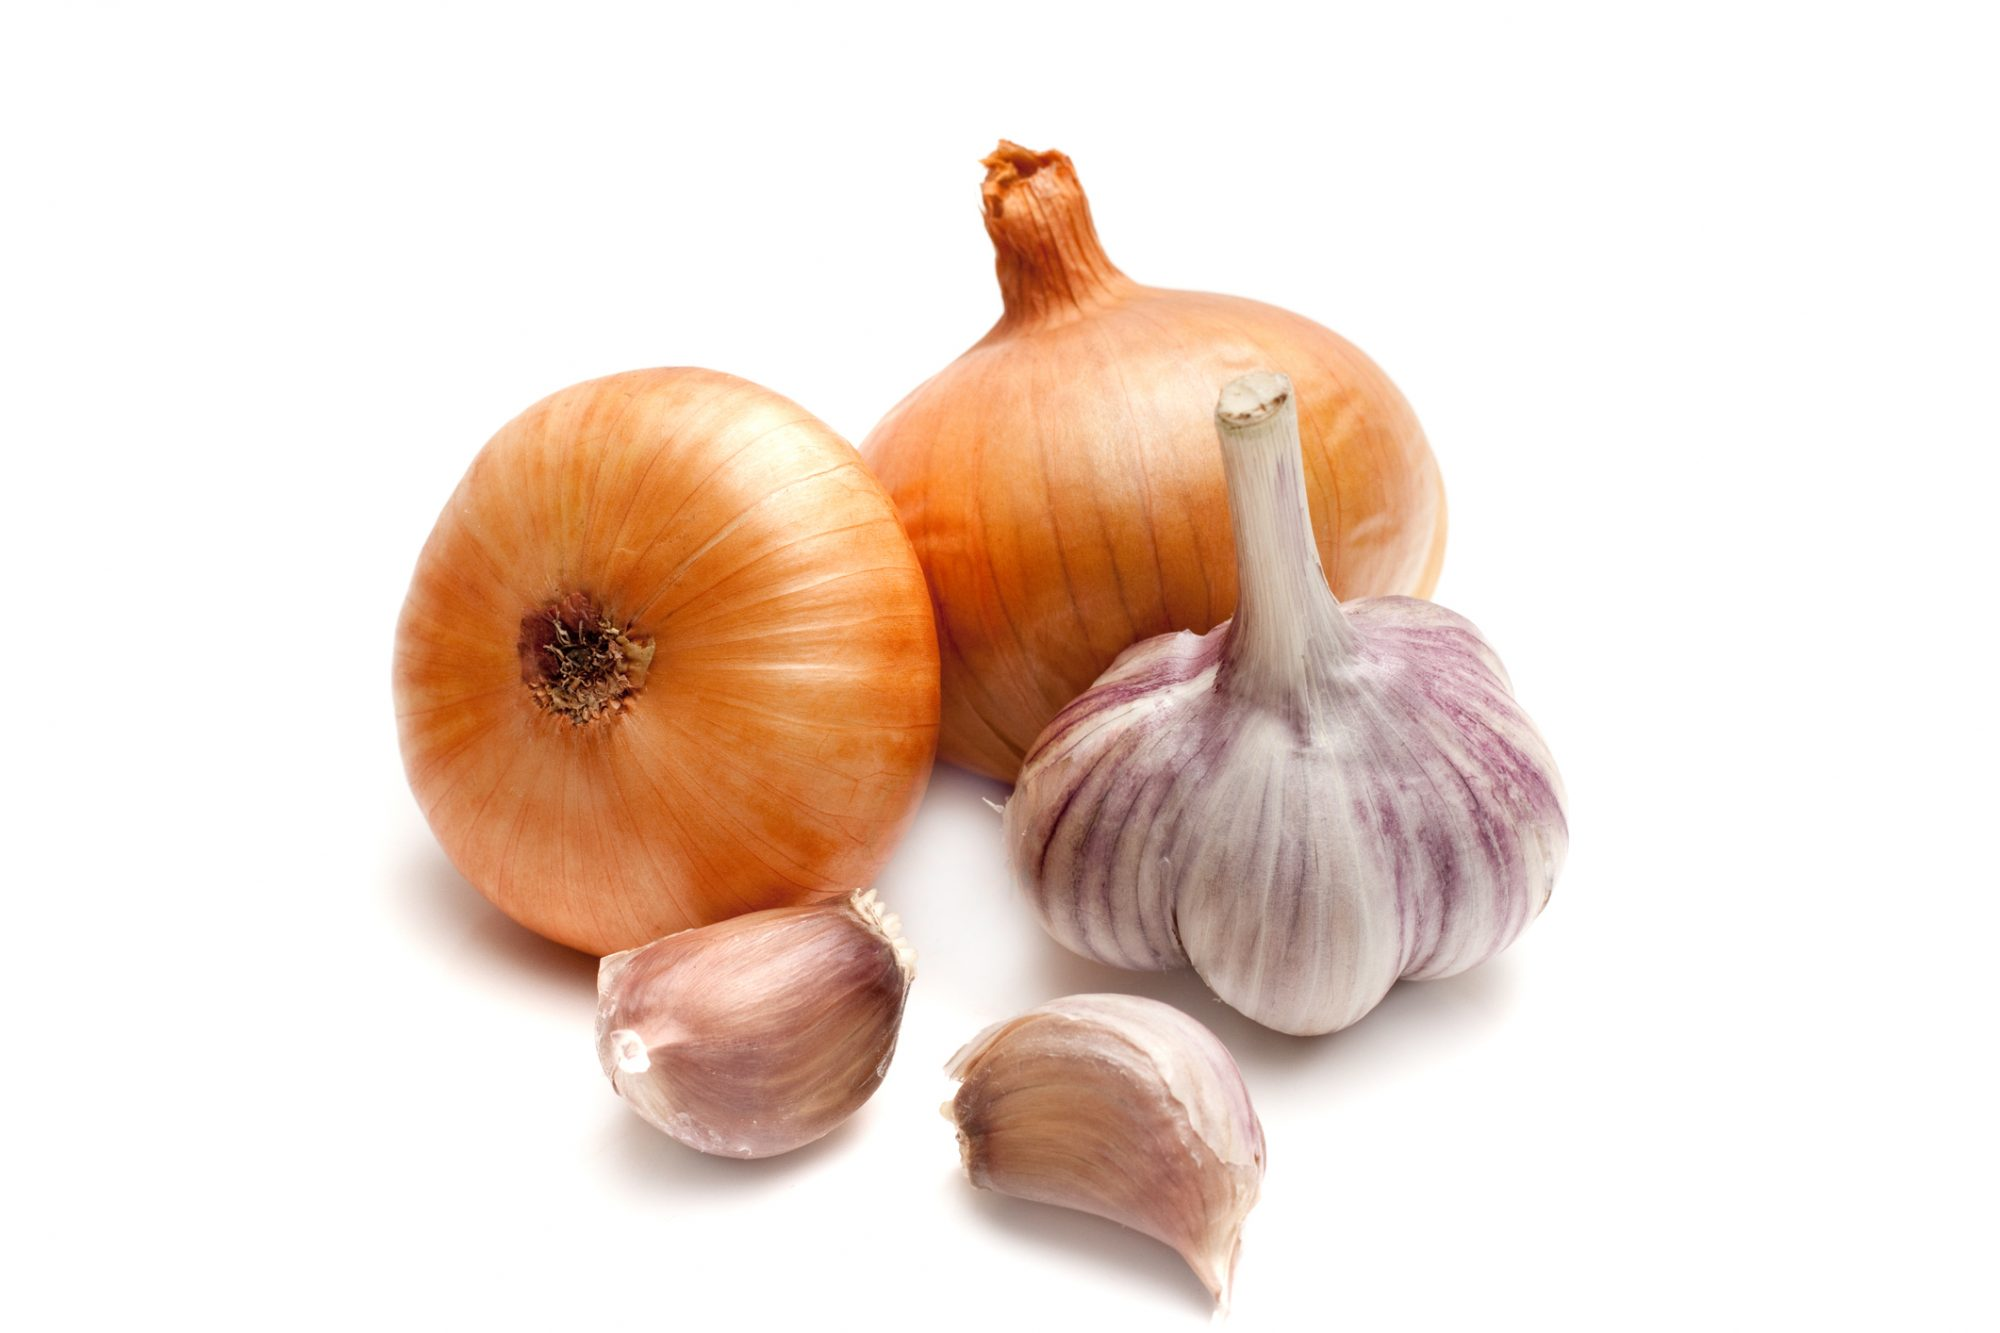 getty-onion-and-garlic-image